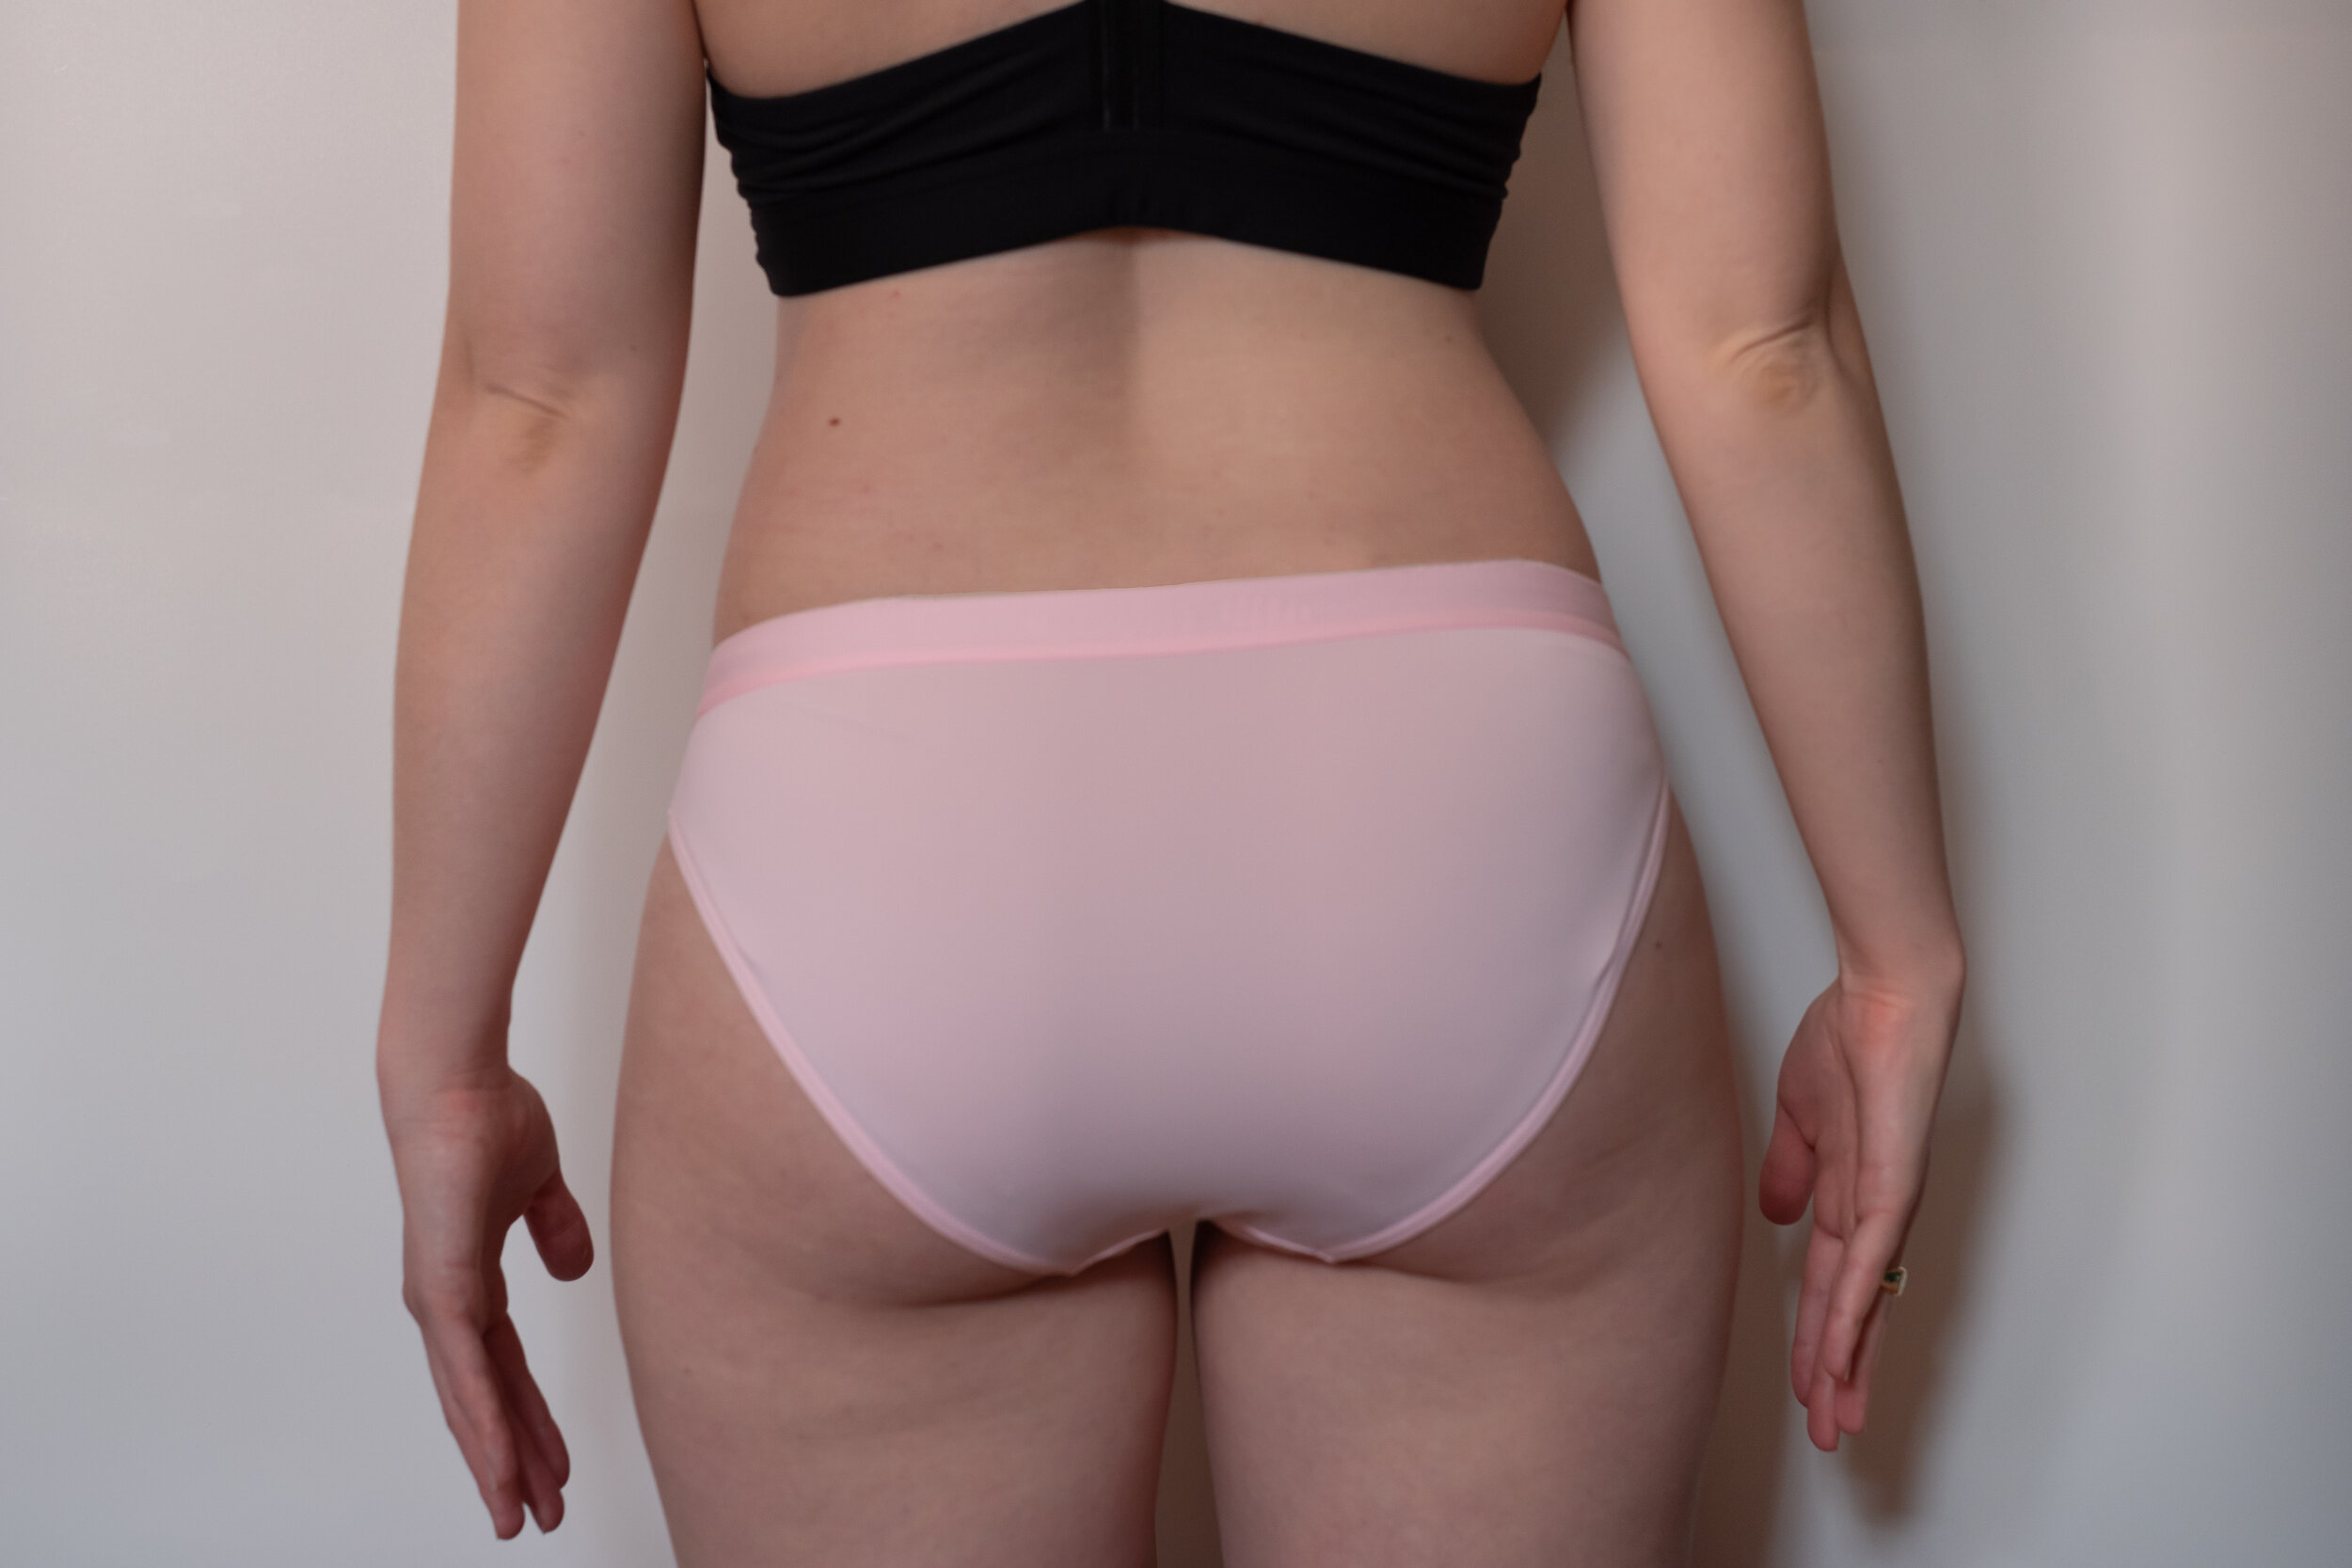 """Details about  /2 FITS 12/"""" SHIRLEY 2 PANTIES UNDIES WHITE  FIT SIMILAR SIZE NEW"""